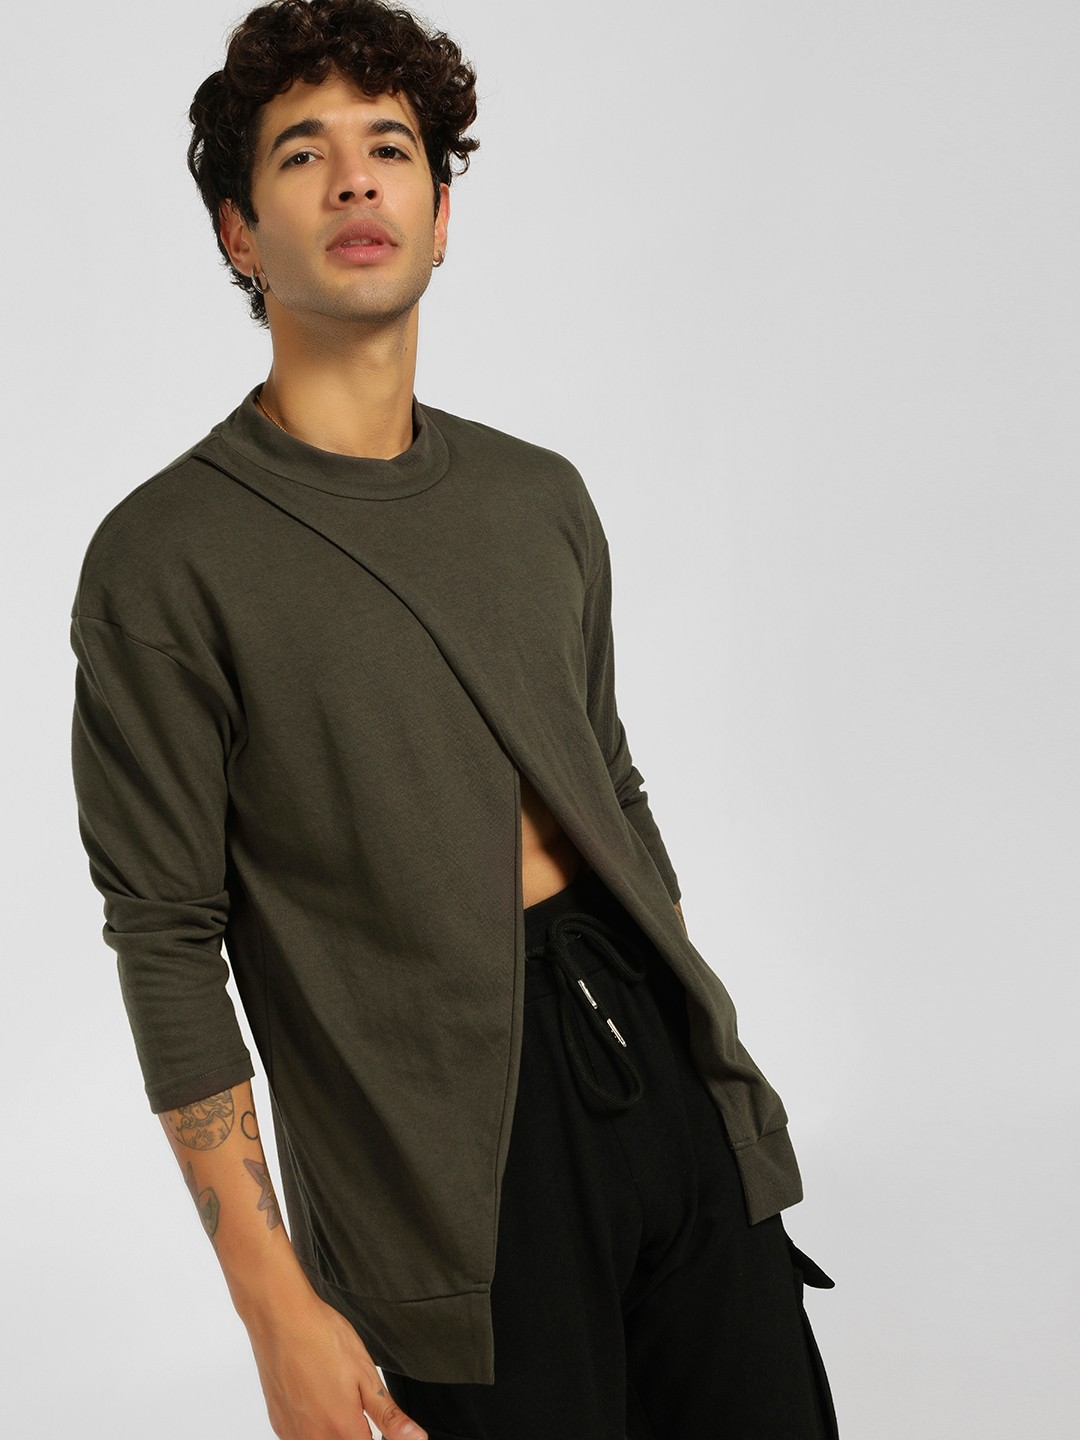 SKULT By Shahid Kapoor Olive Ribbed Overlay T-Shirt 1